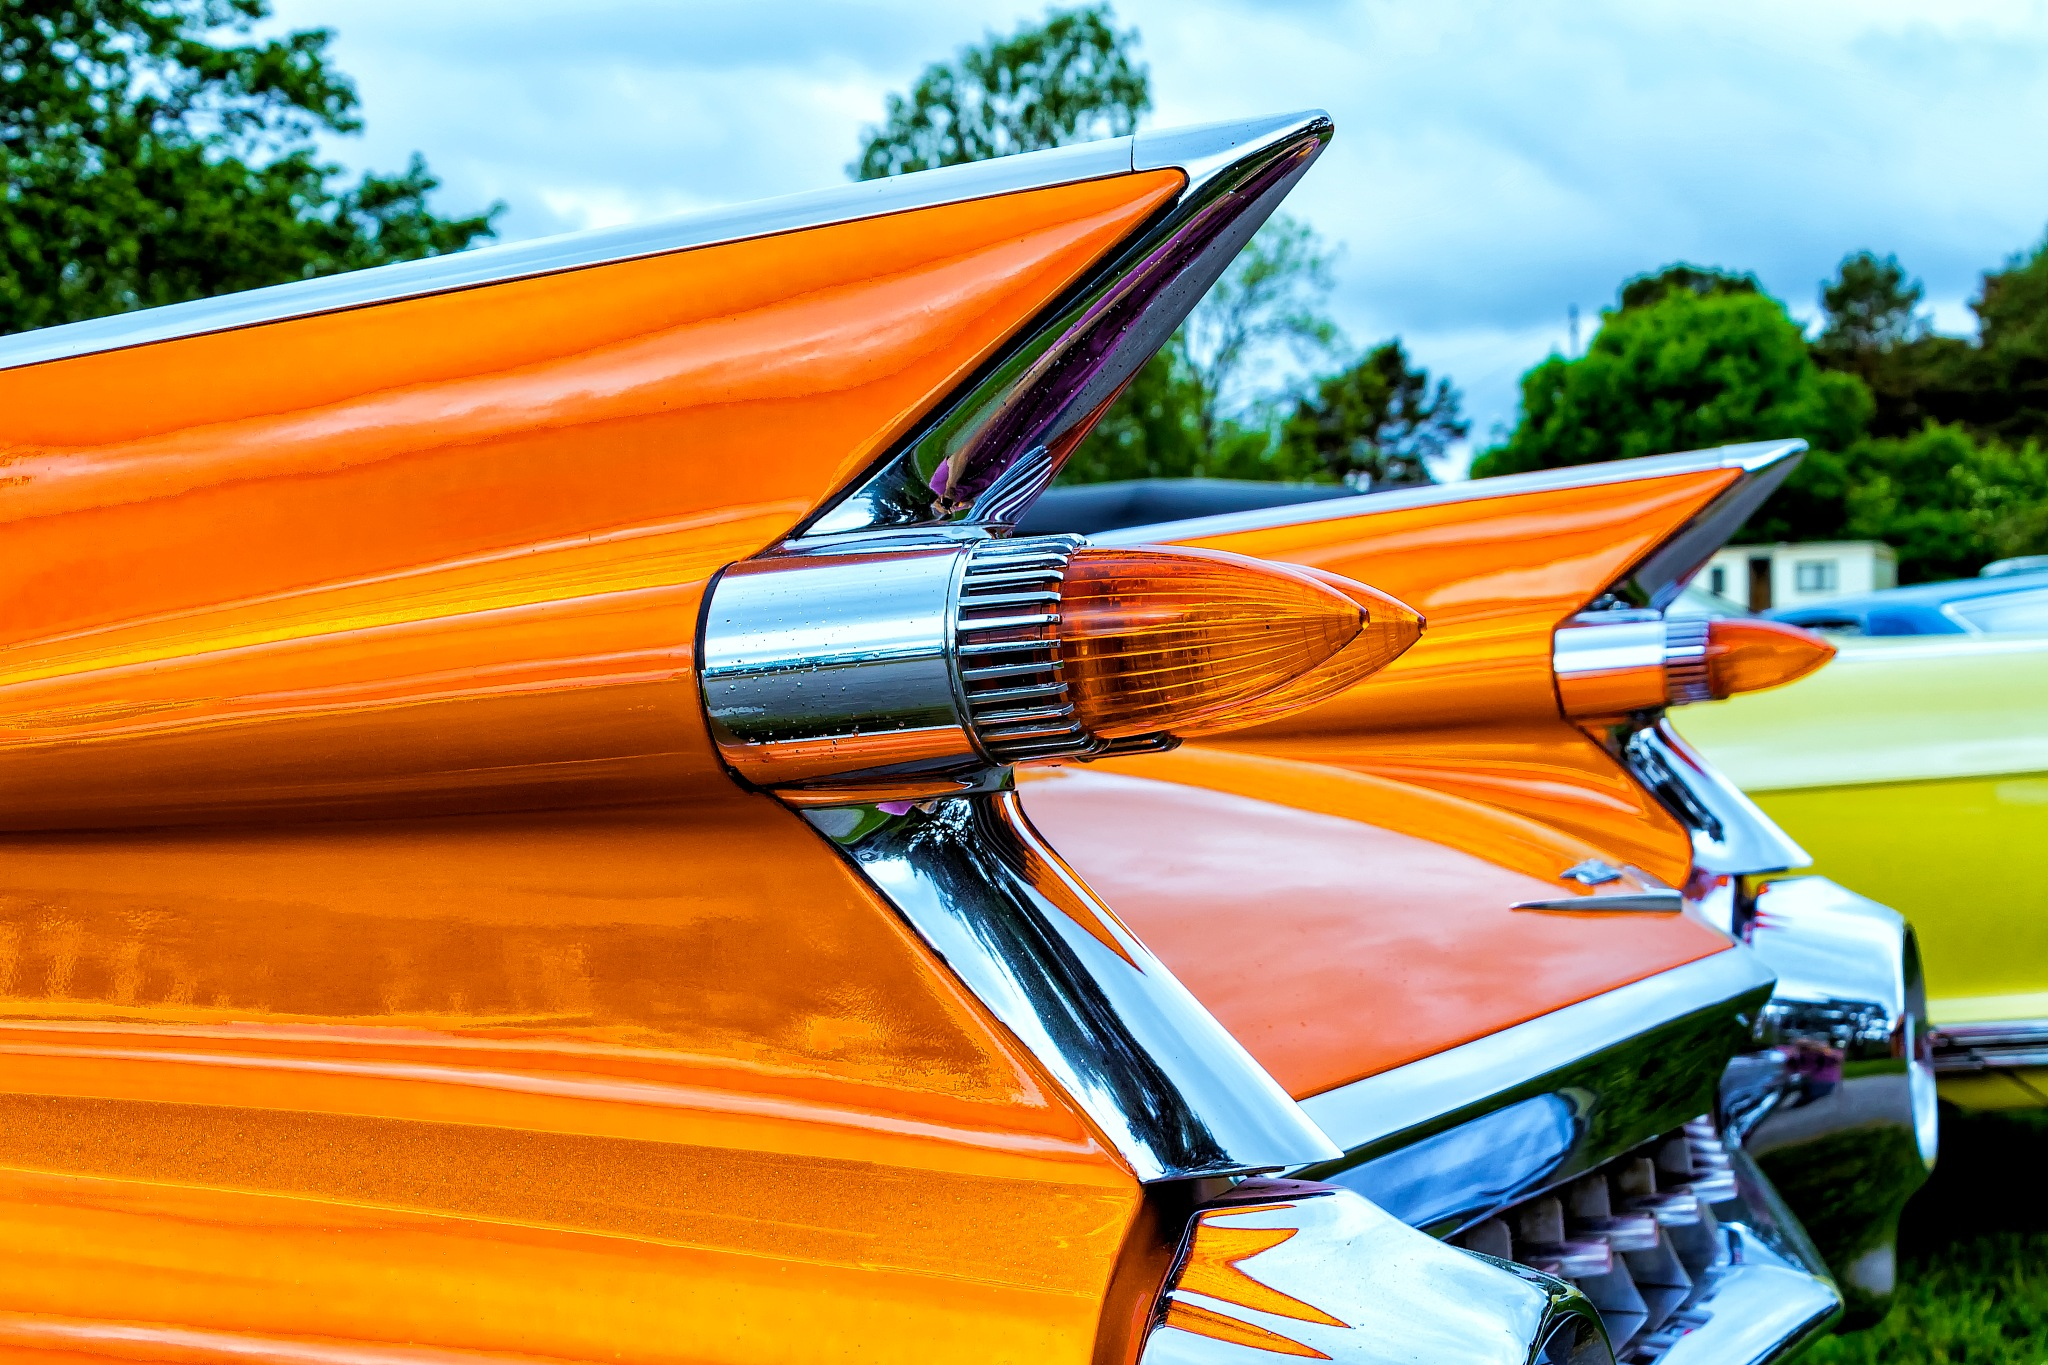 Orange Caddy by Martin Benning-Rogers